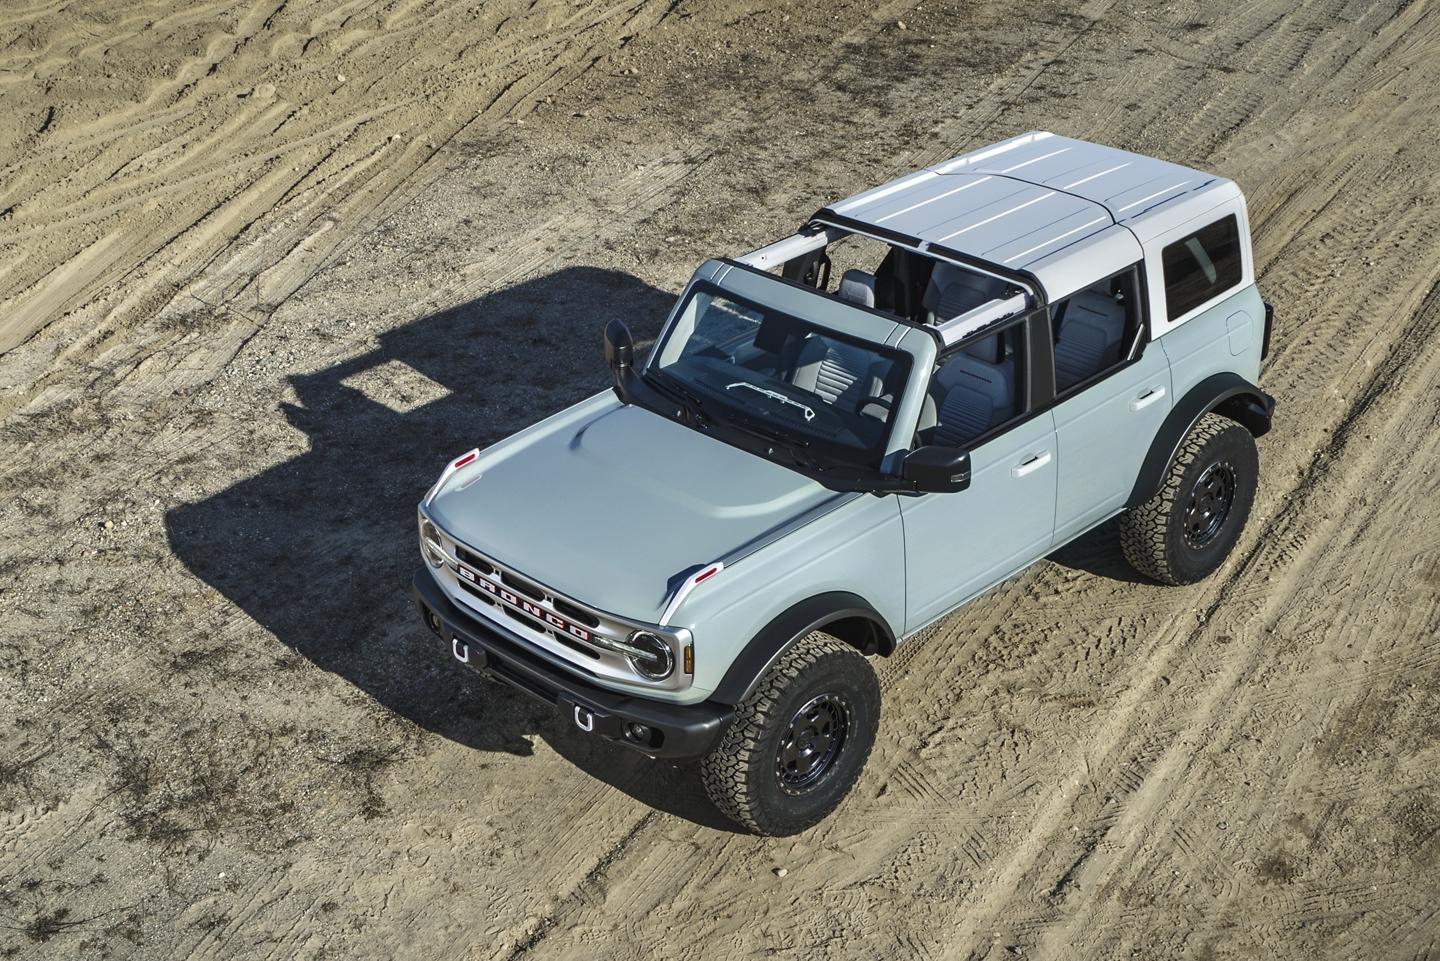 new Bronco, sixth-generation Ford Bronco, sixth-generation Bronco, new Bronco, Cactus Gray, Cactus Grey, 2021 Ford Bronco, 2021 Bronco